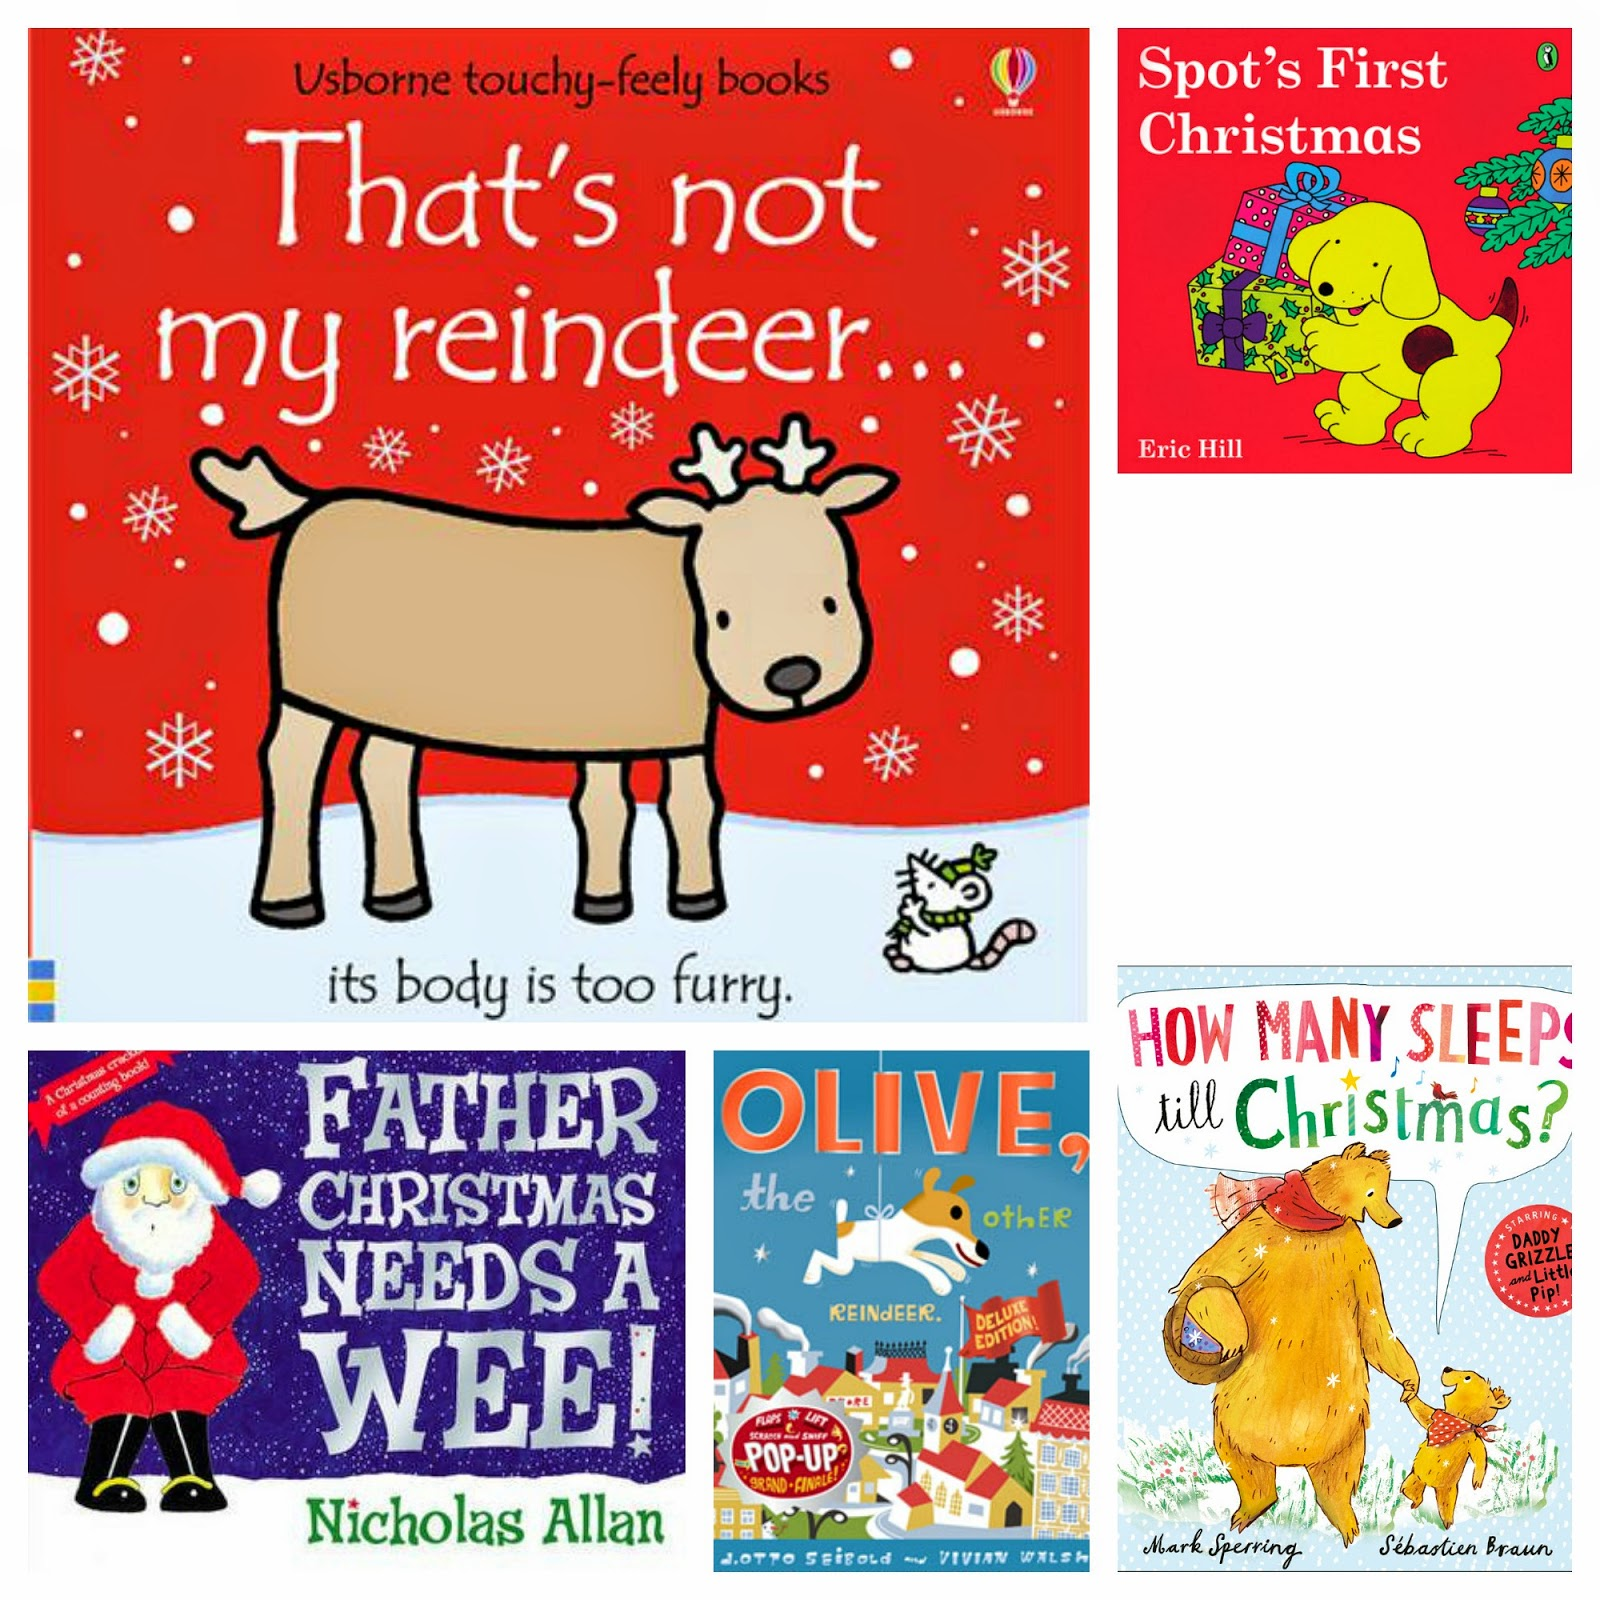 25 days of christmas books bookclub special book club special sunday night - Classic Christmas Books